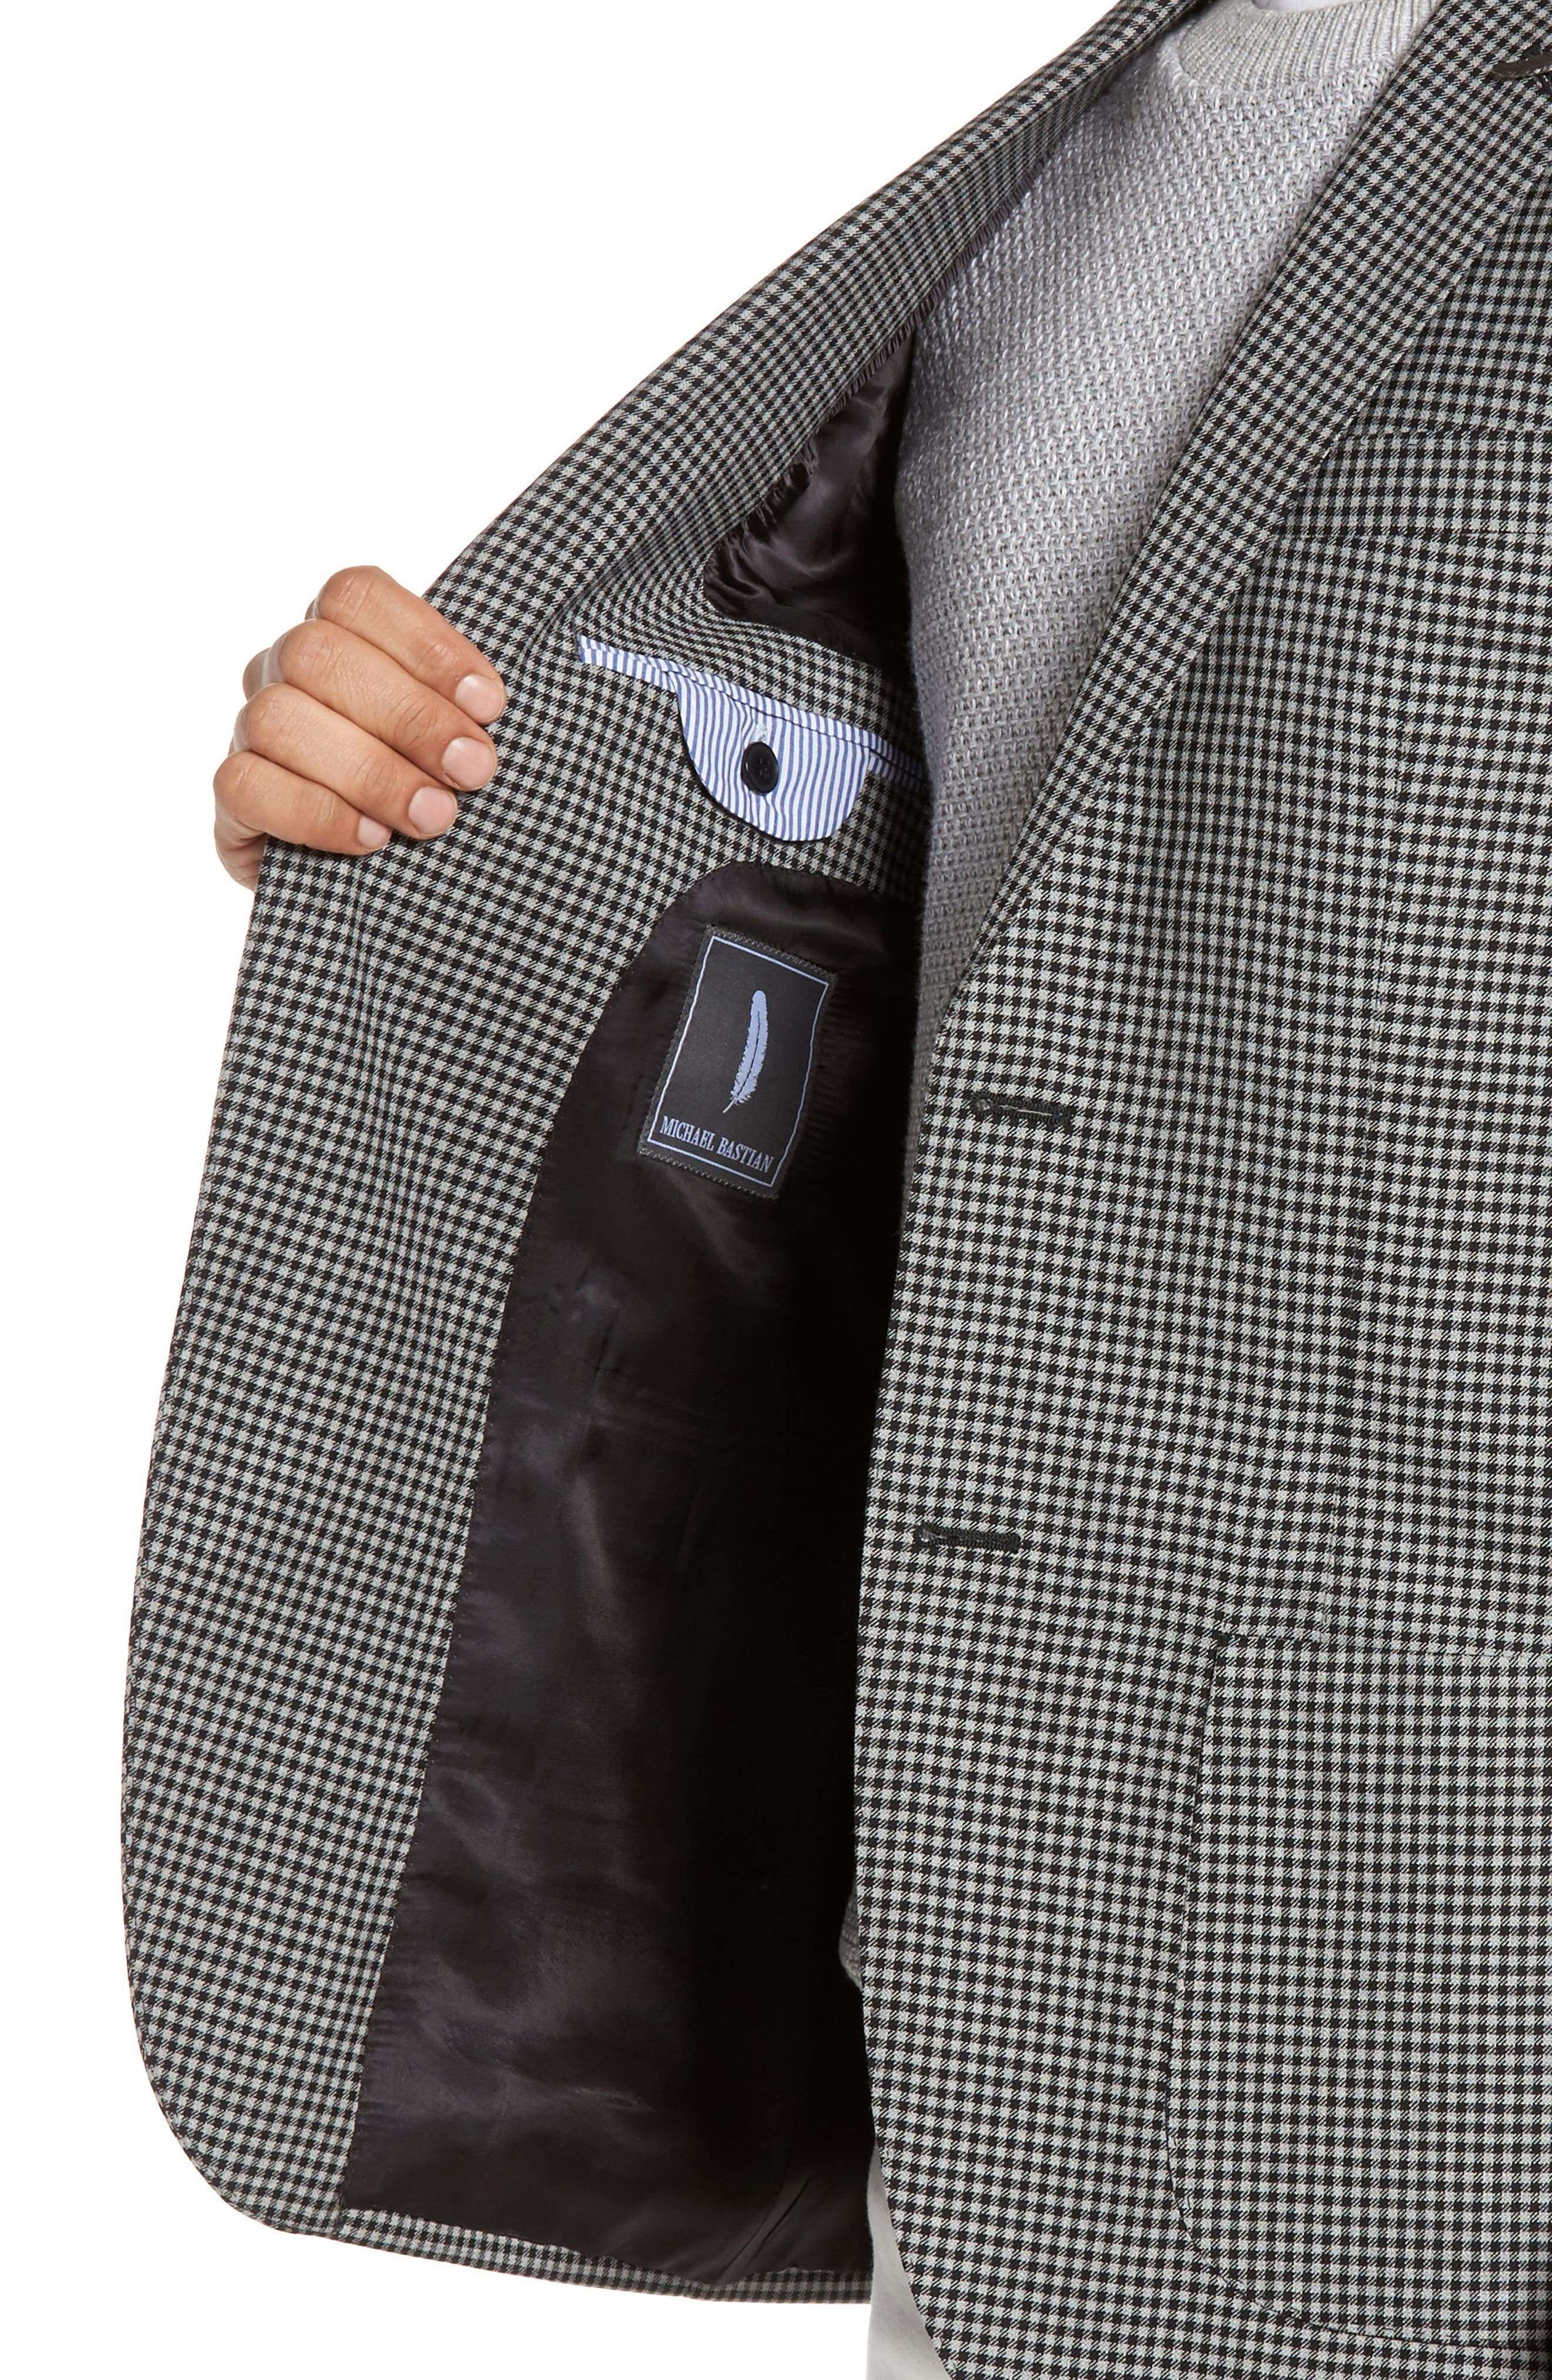 Classic Fit Check Wool Sport Coat,                             Alternate thumbnail 4, color,                             002